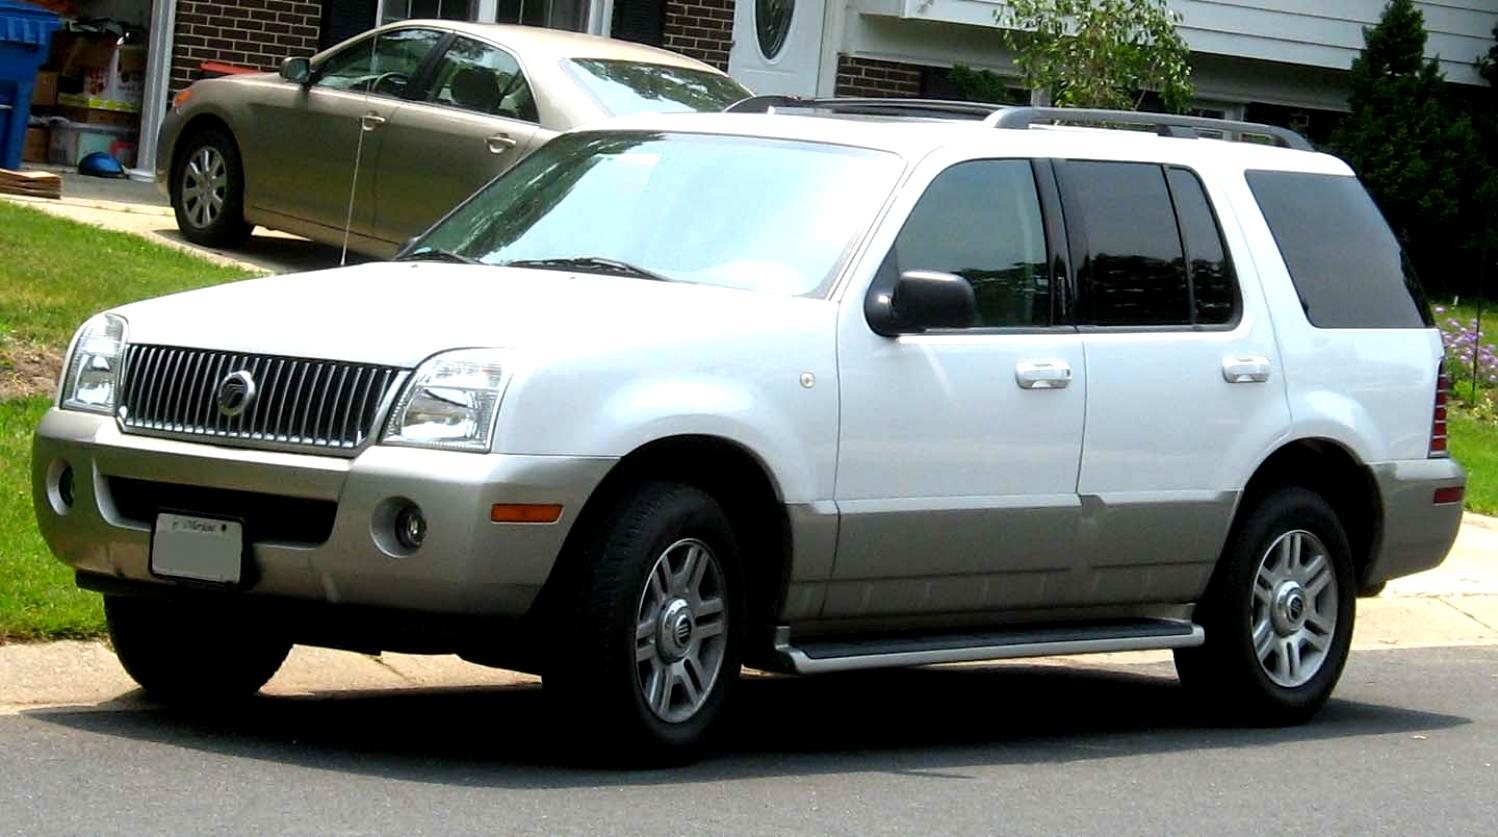 Ford Expedition 2002 #29